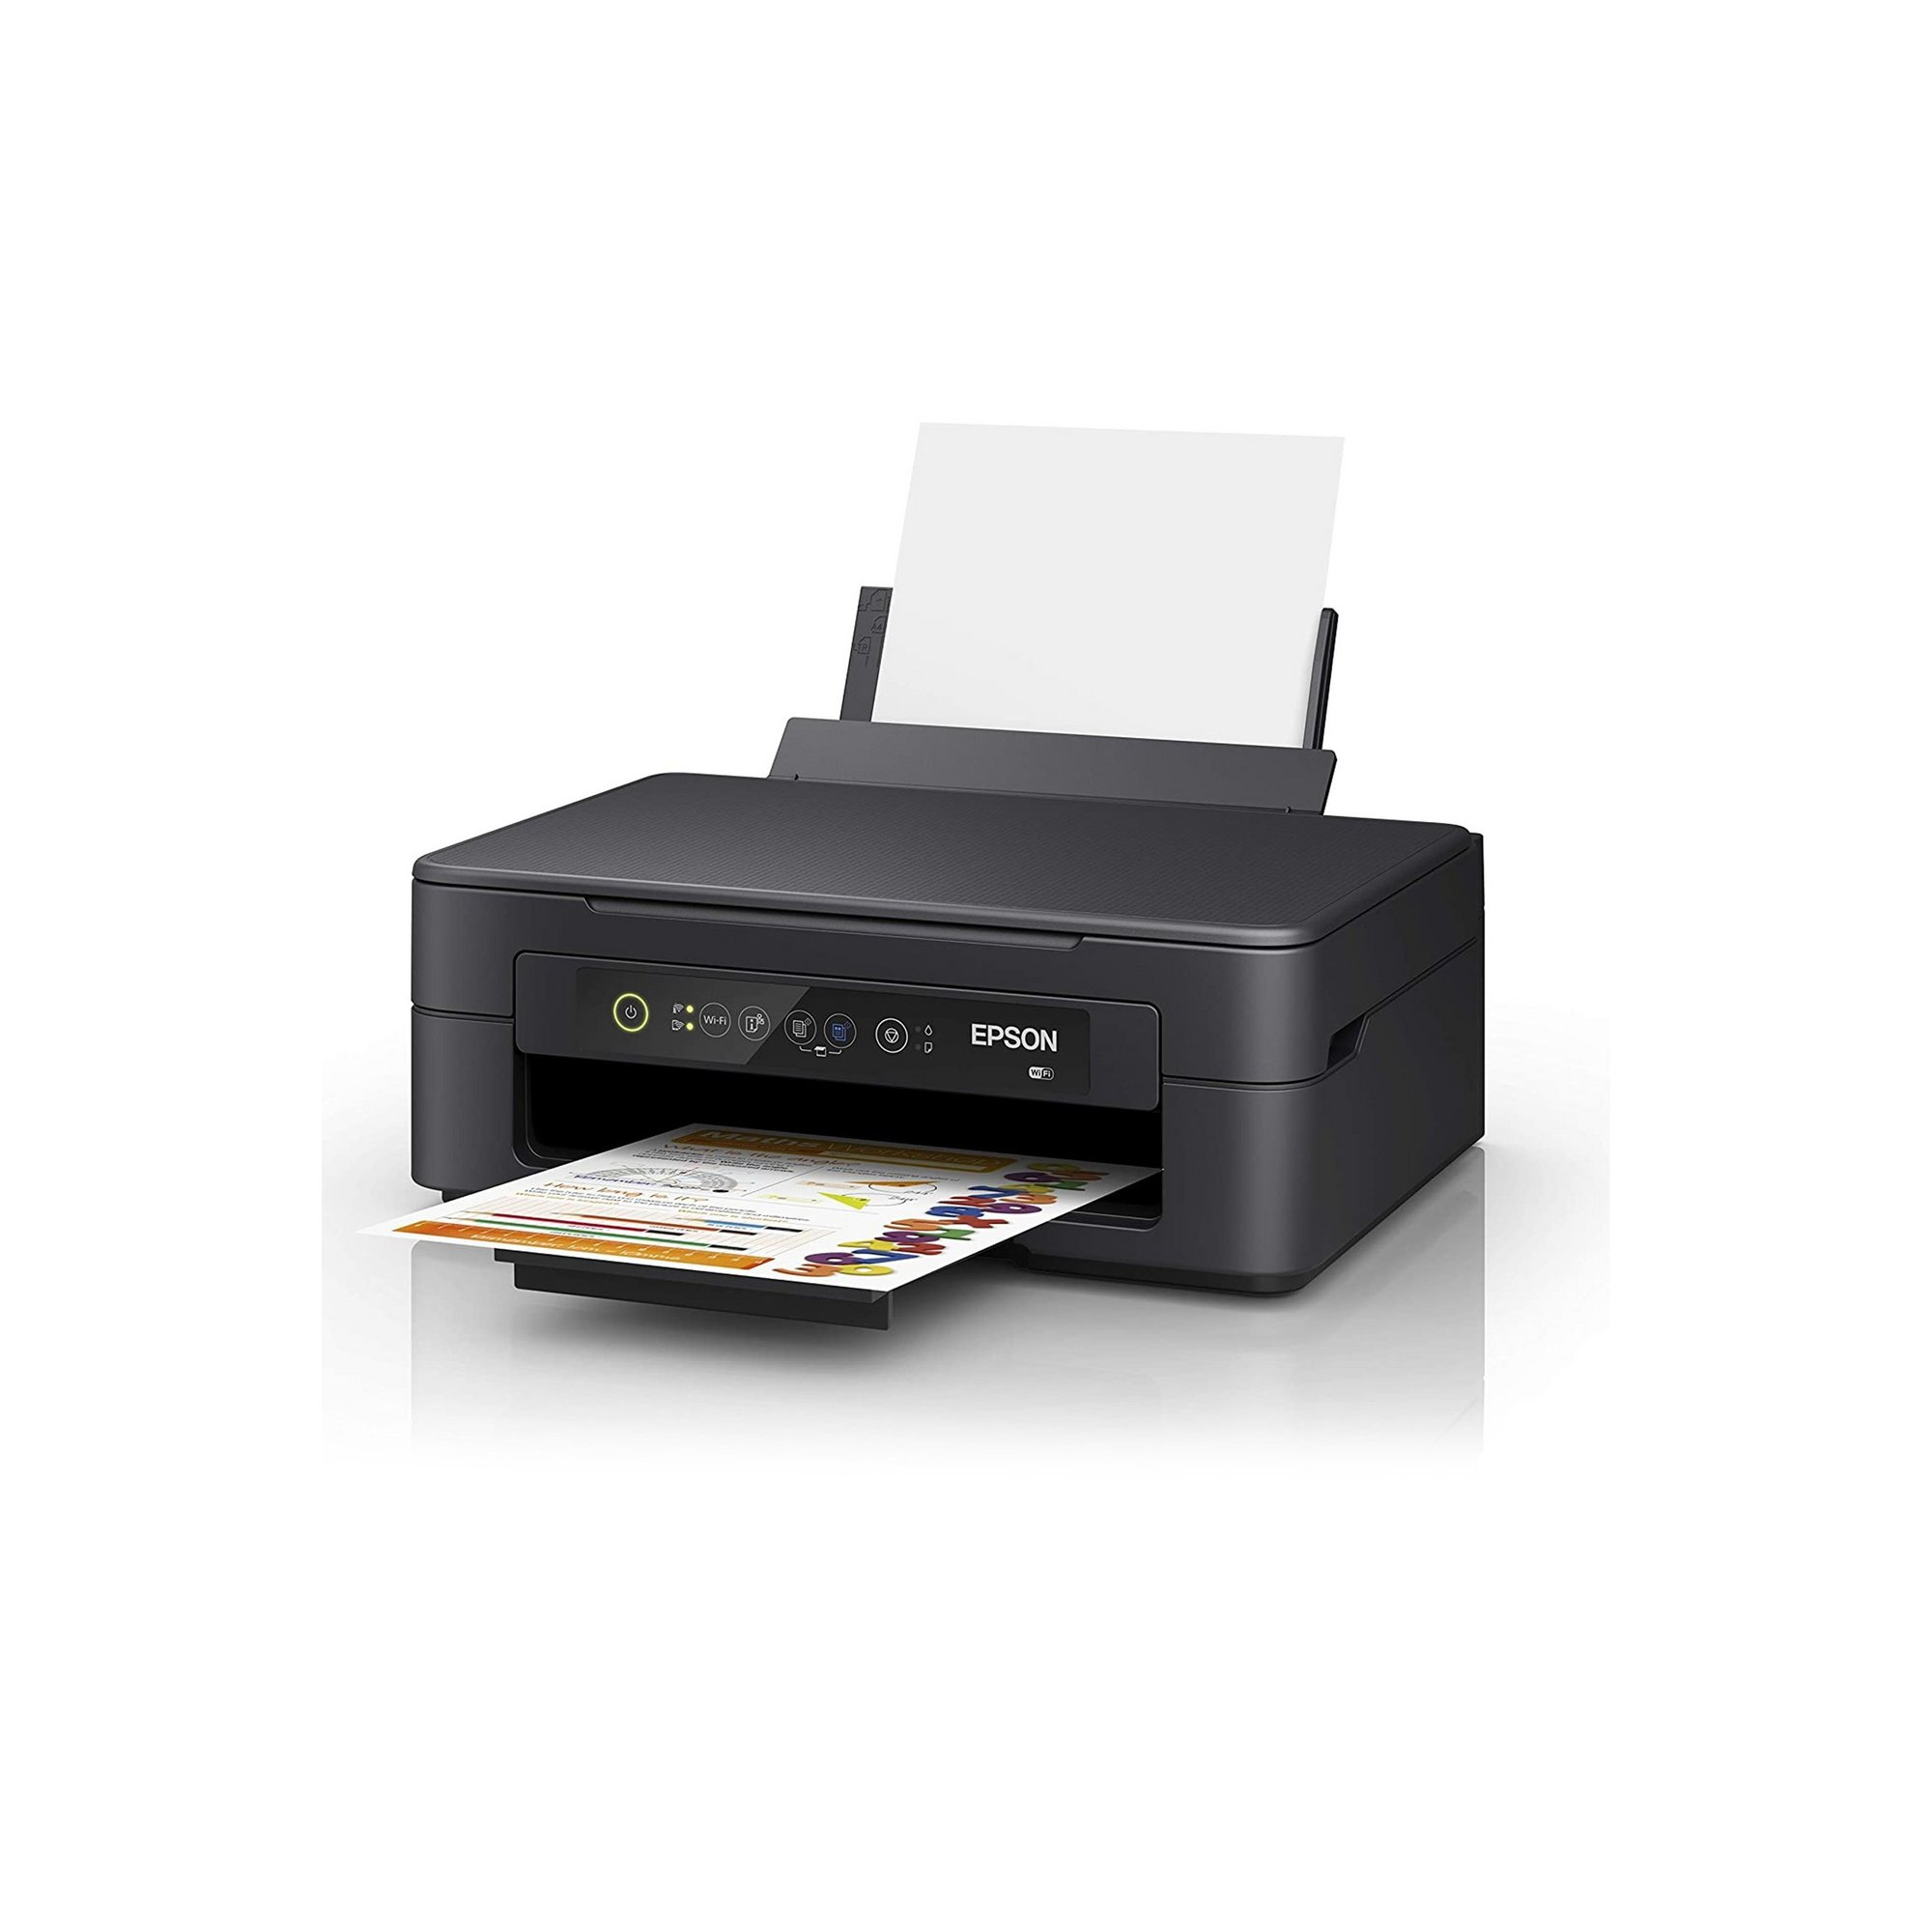 Image of Epson Expression Home XP-2100 3-in-1 Colour Inkjet Printer